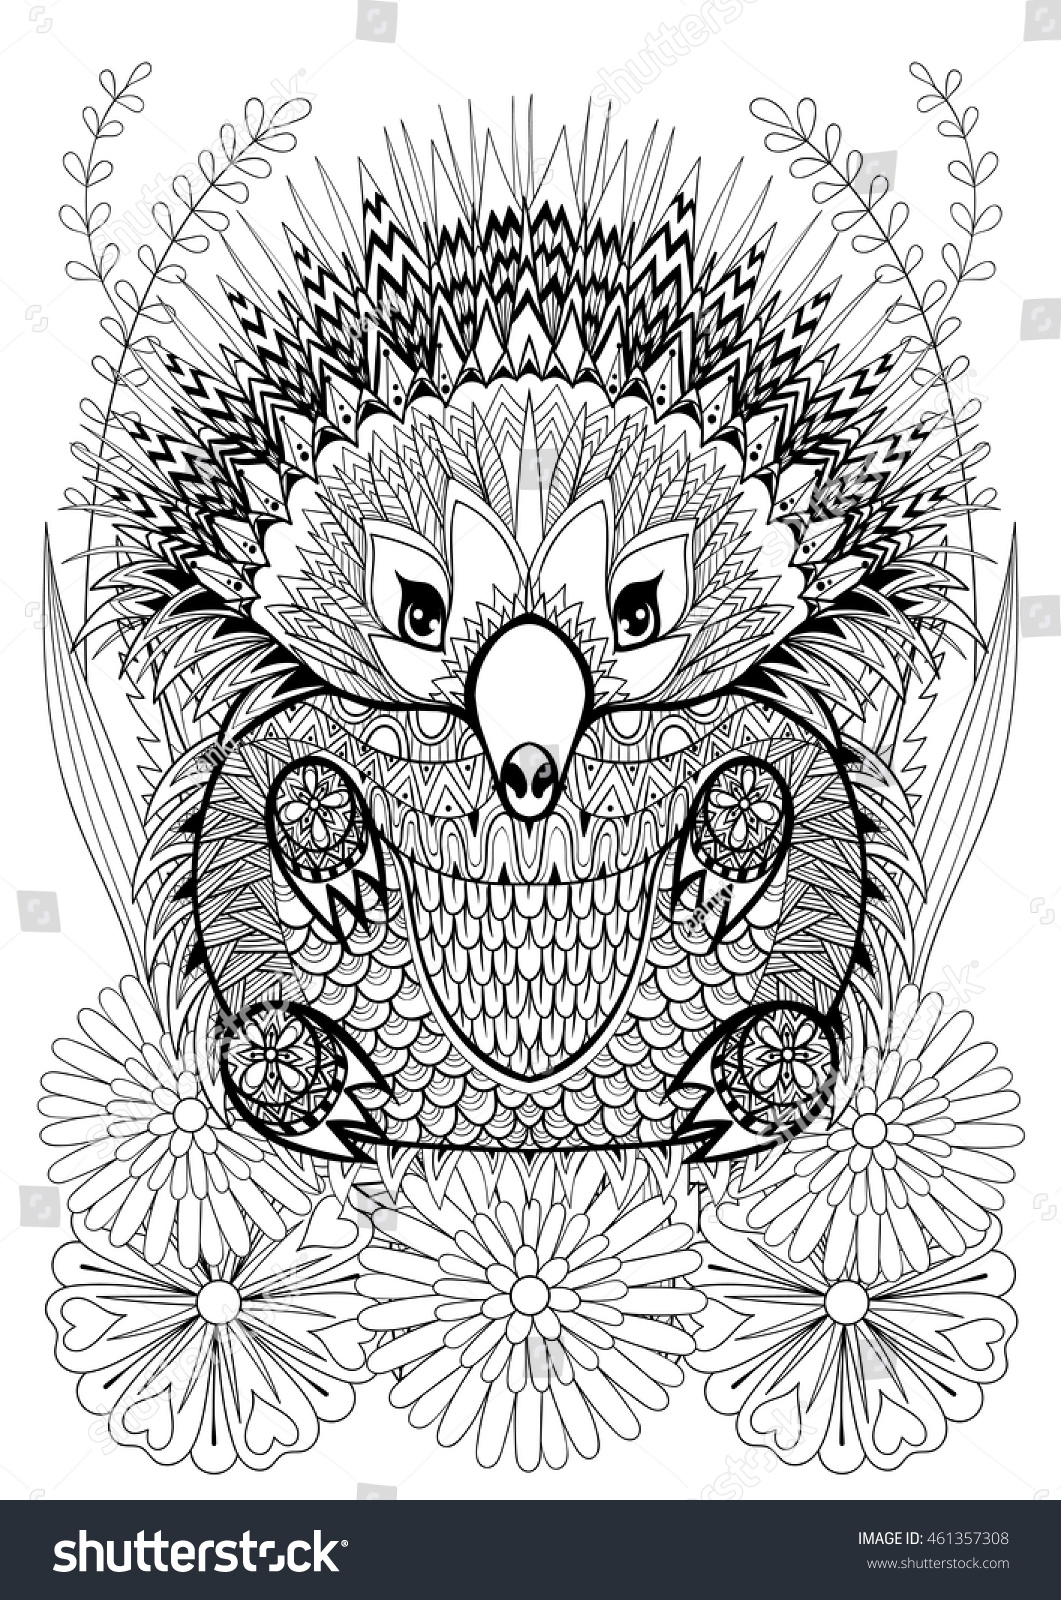 zentangle stylized echidna flowers hand drawn stock vector